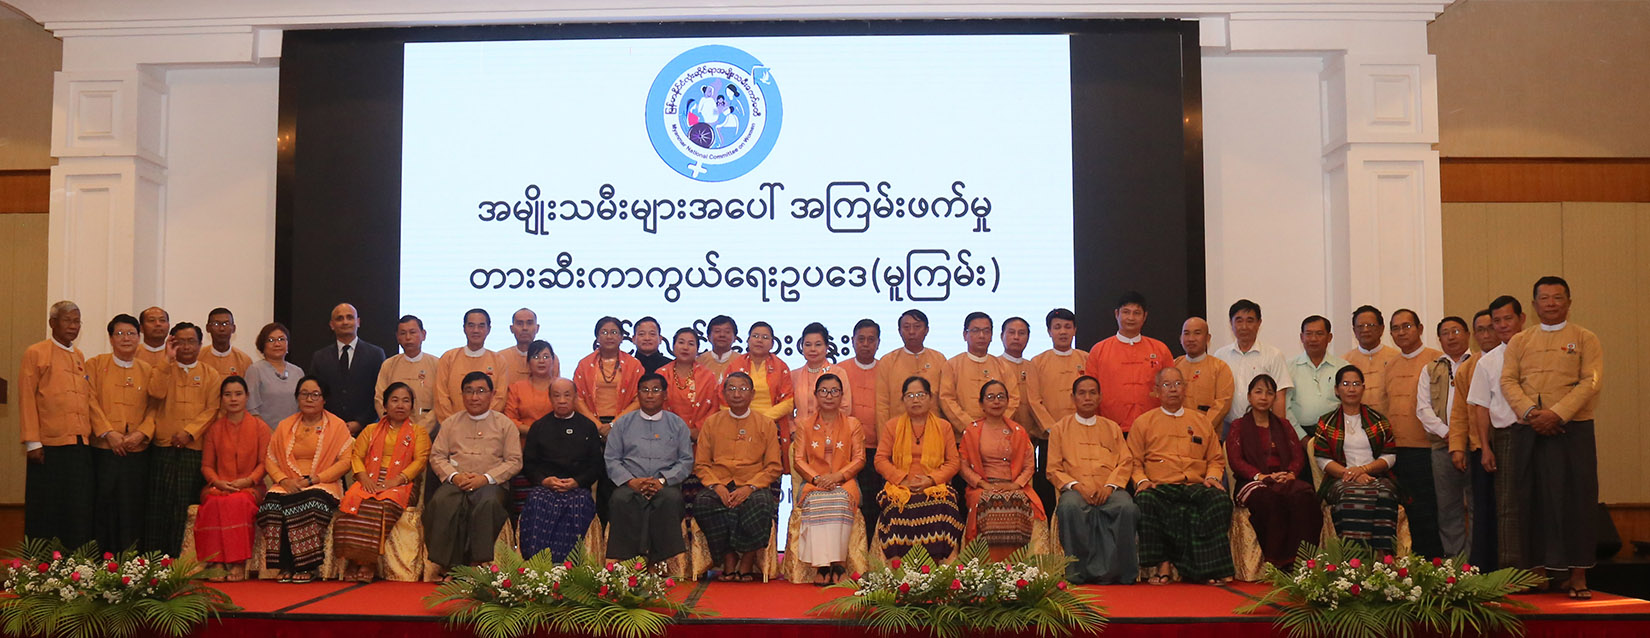 Pyidaungsu Hluttaw Deputy Speaker U Tun Tun Hein, Union Minister Dr Win Myat Aye and Hluttaw representatives pose for a photograph at the ceremony in Nay Pyi Taw yesterday. Photo: MNA